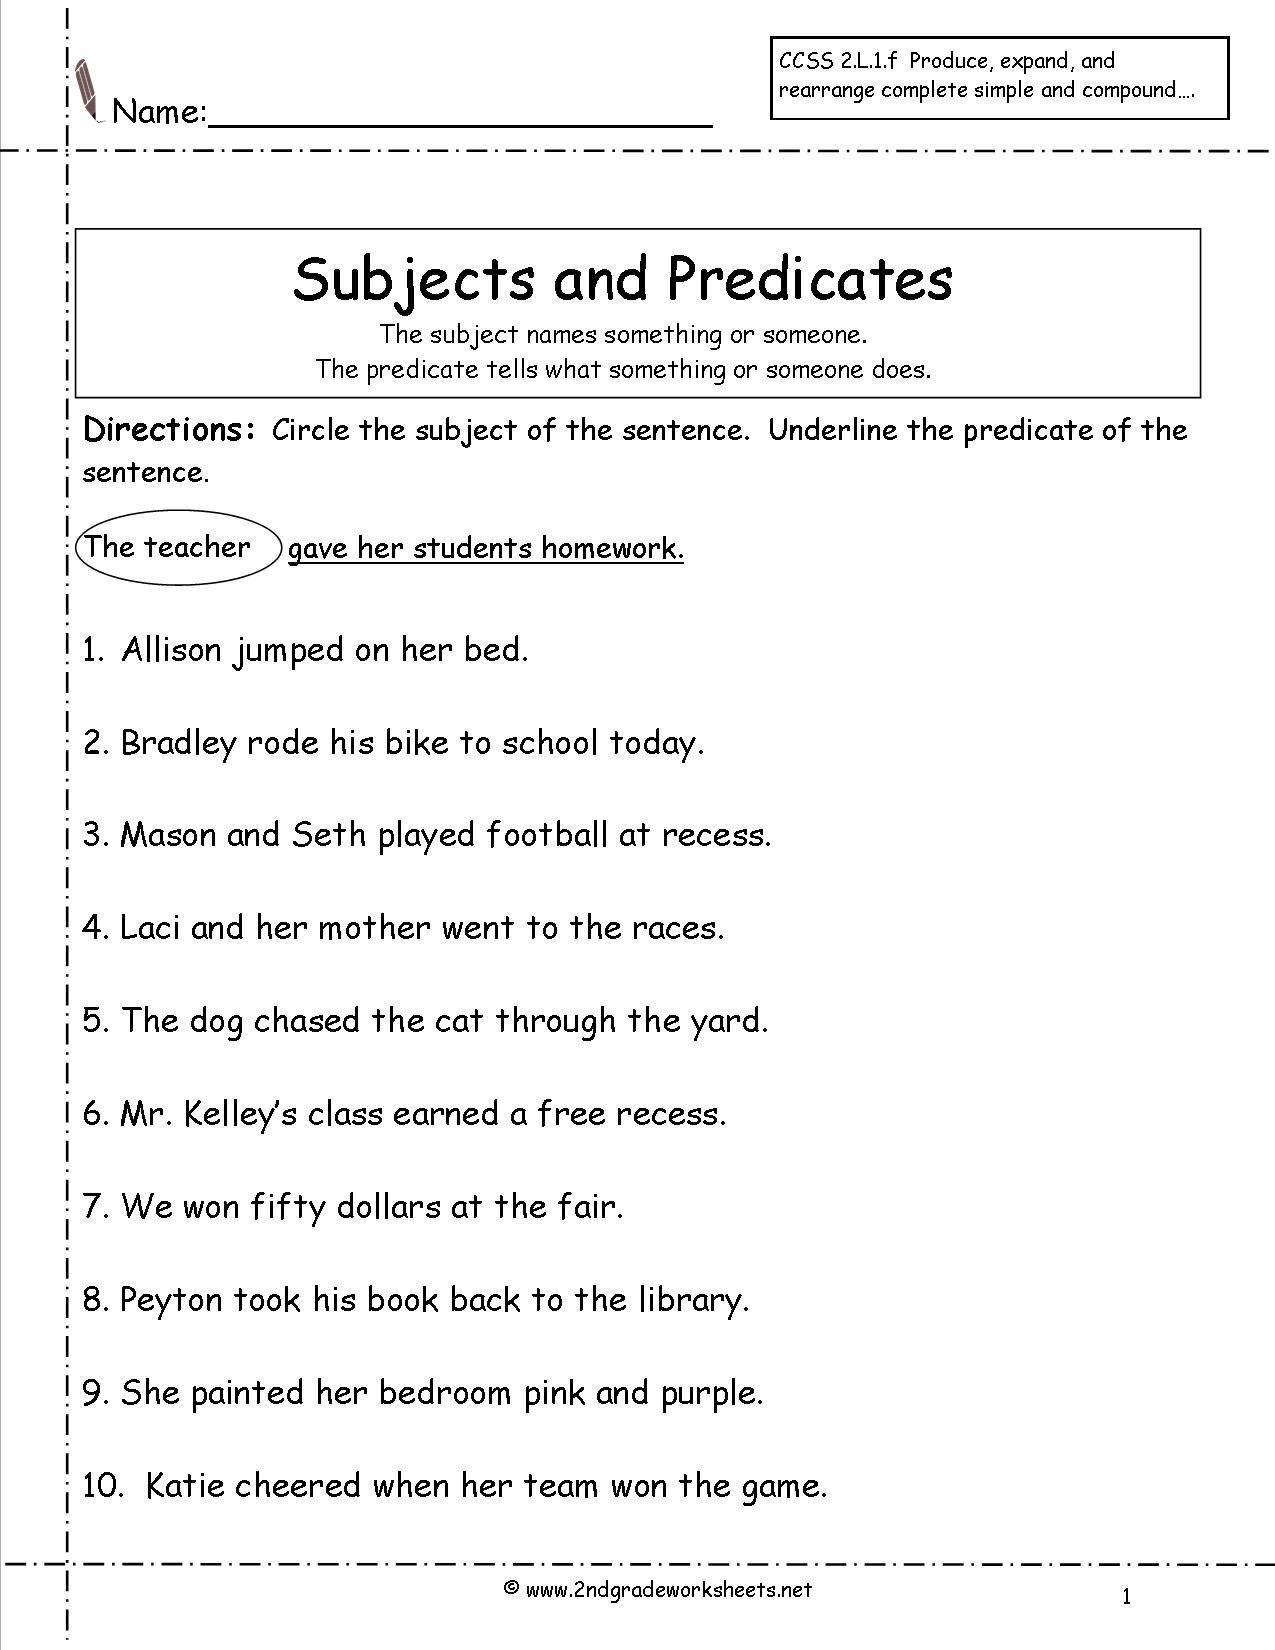 Subject Predicate Worksheets 2nd Grade Google Search Subject